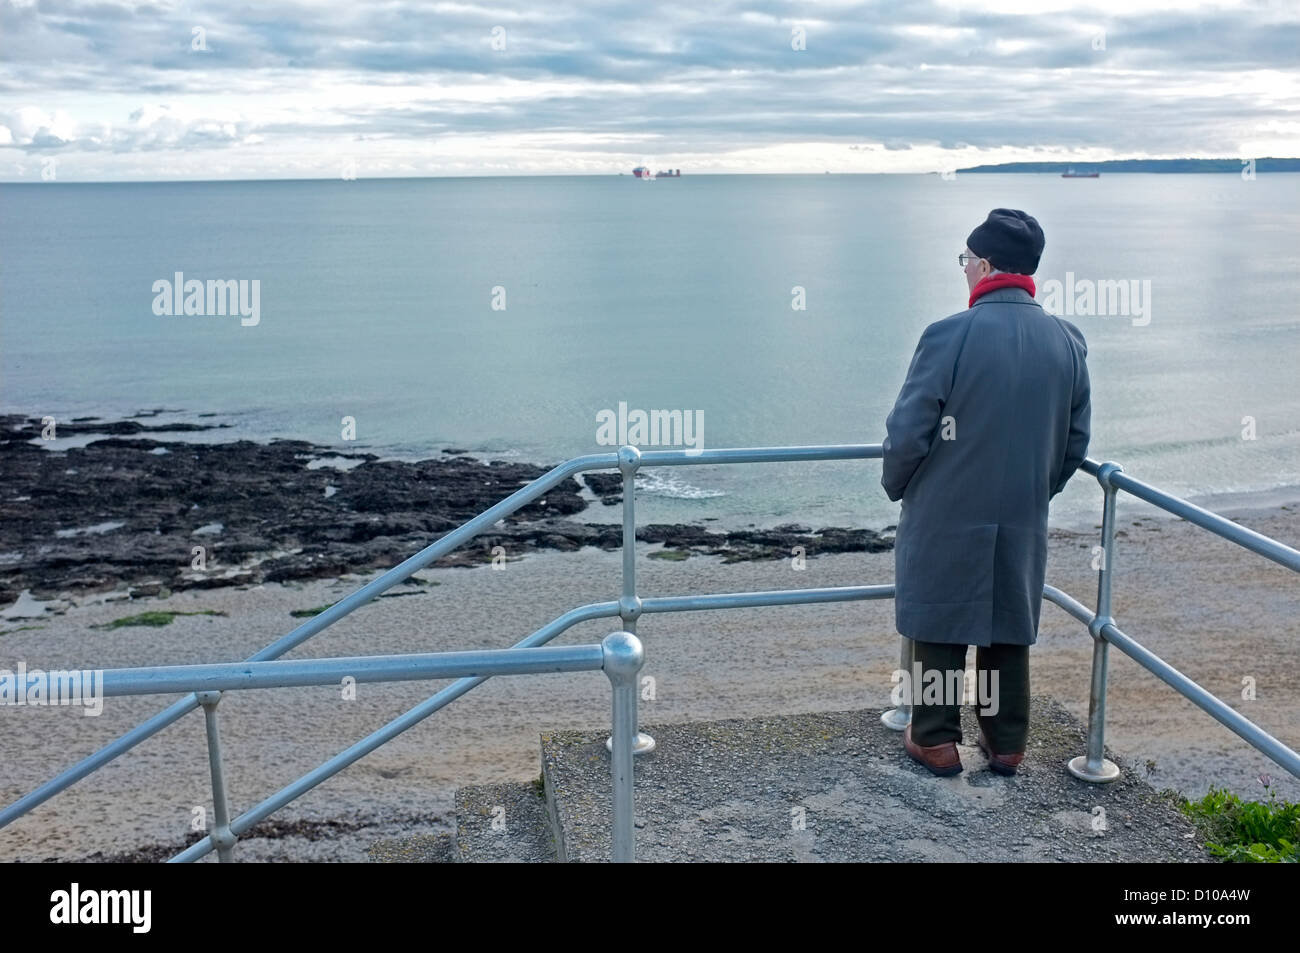 An old man looks out on a placid sea ay Gyllyngvase beach  in Cornwall, UK - Stock Image